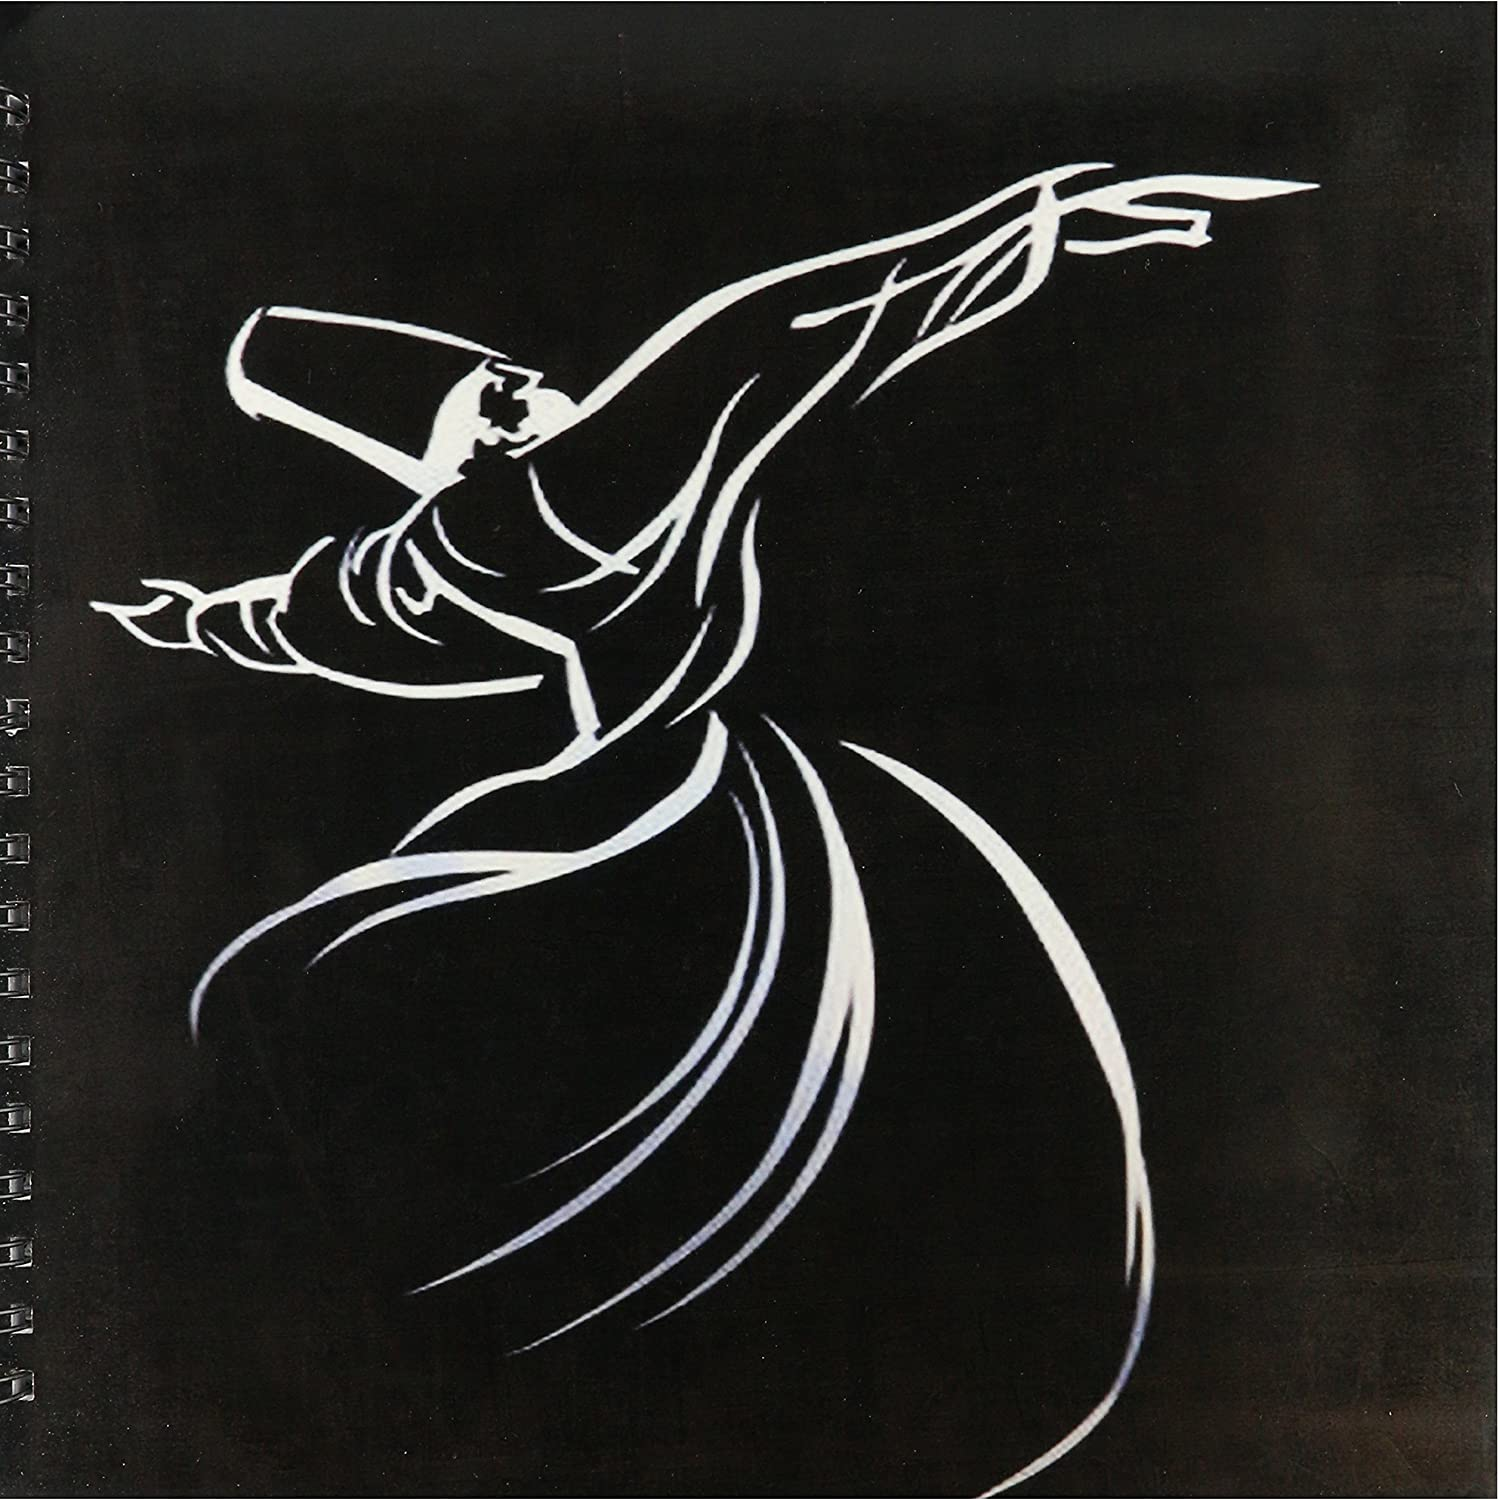 Amazon Com 3drose Db 63146 2 Whirling Dervish Sufi Whirling Meditation Dervishes Memory Book 12 By 12 Inch Arts Crafts Sewing